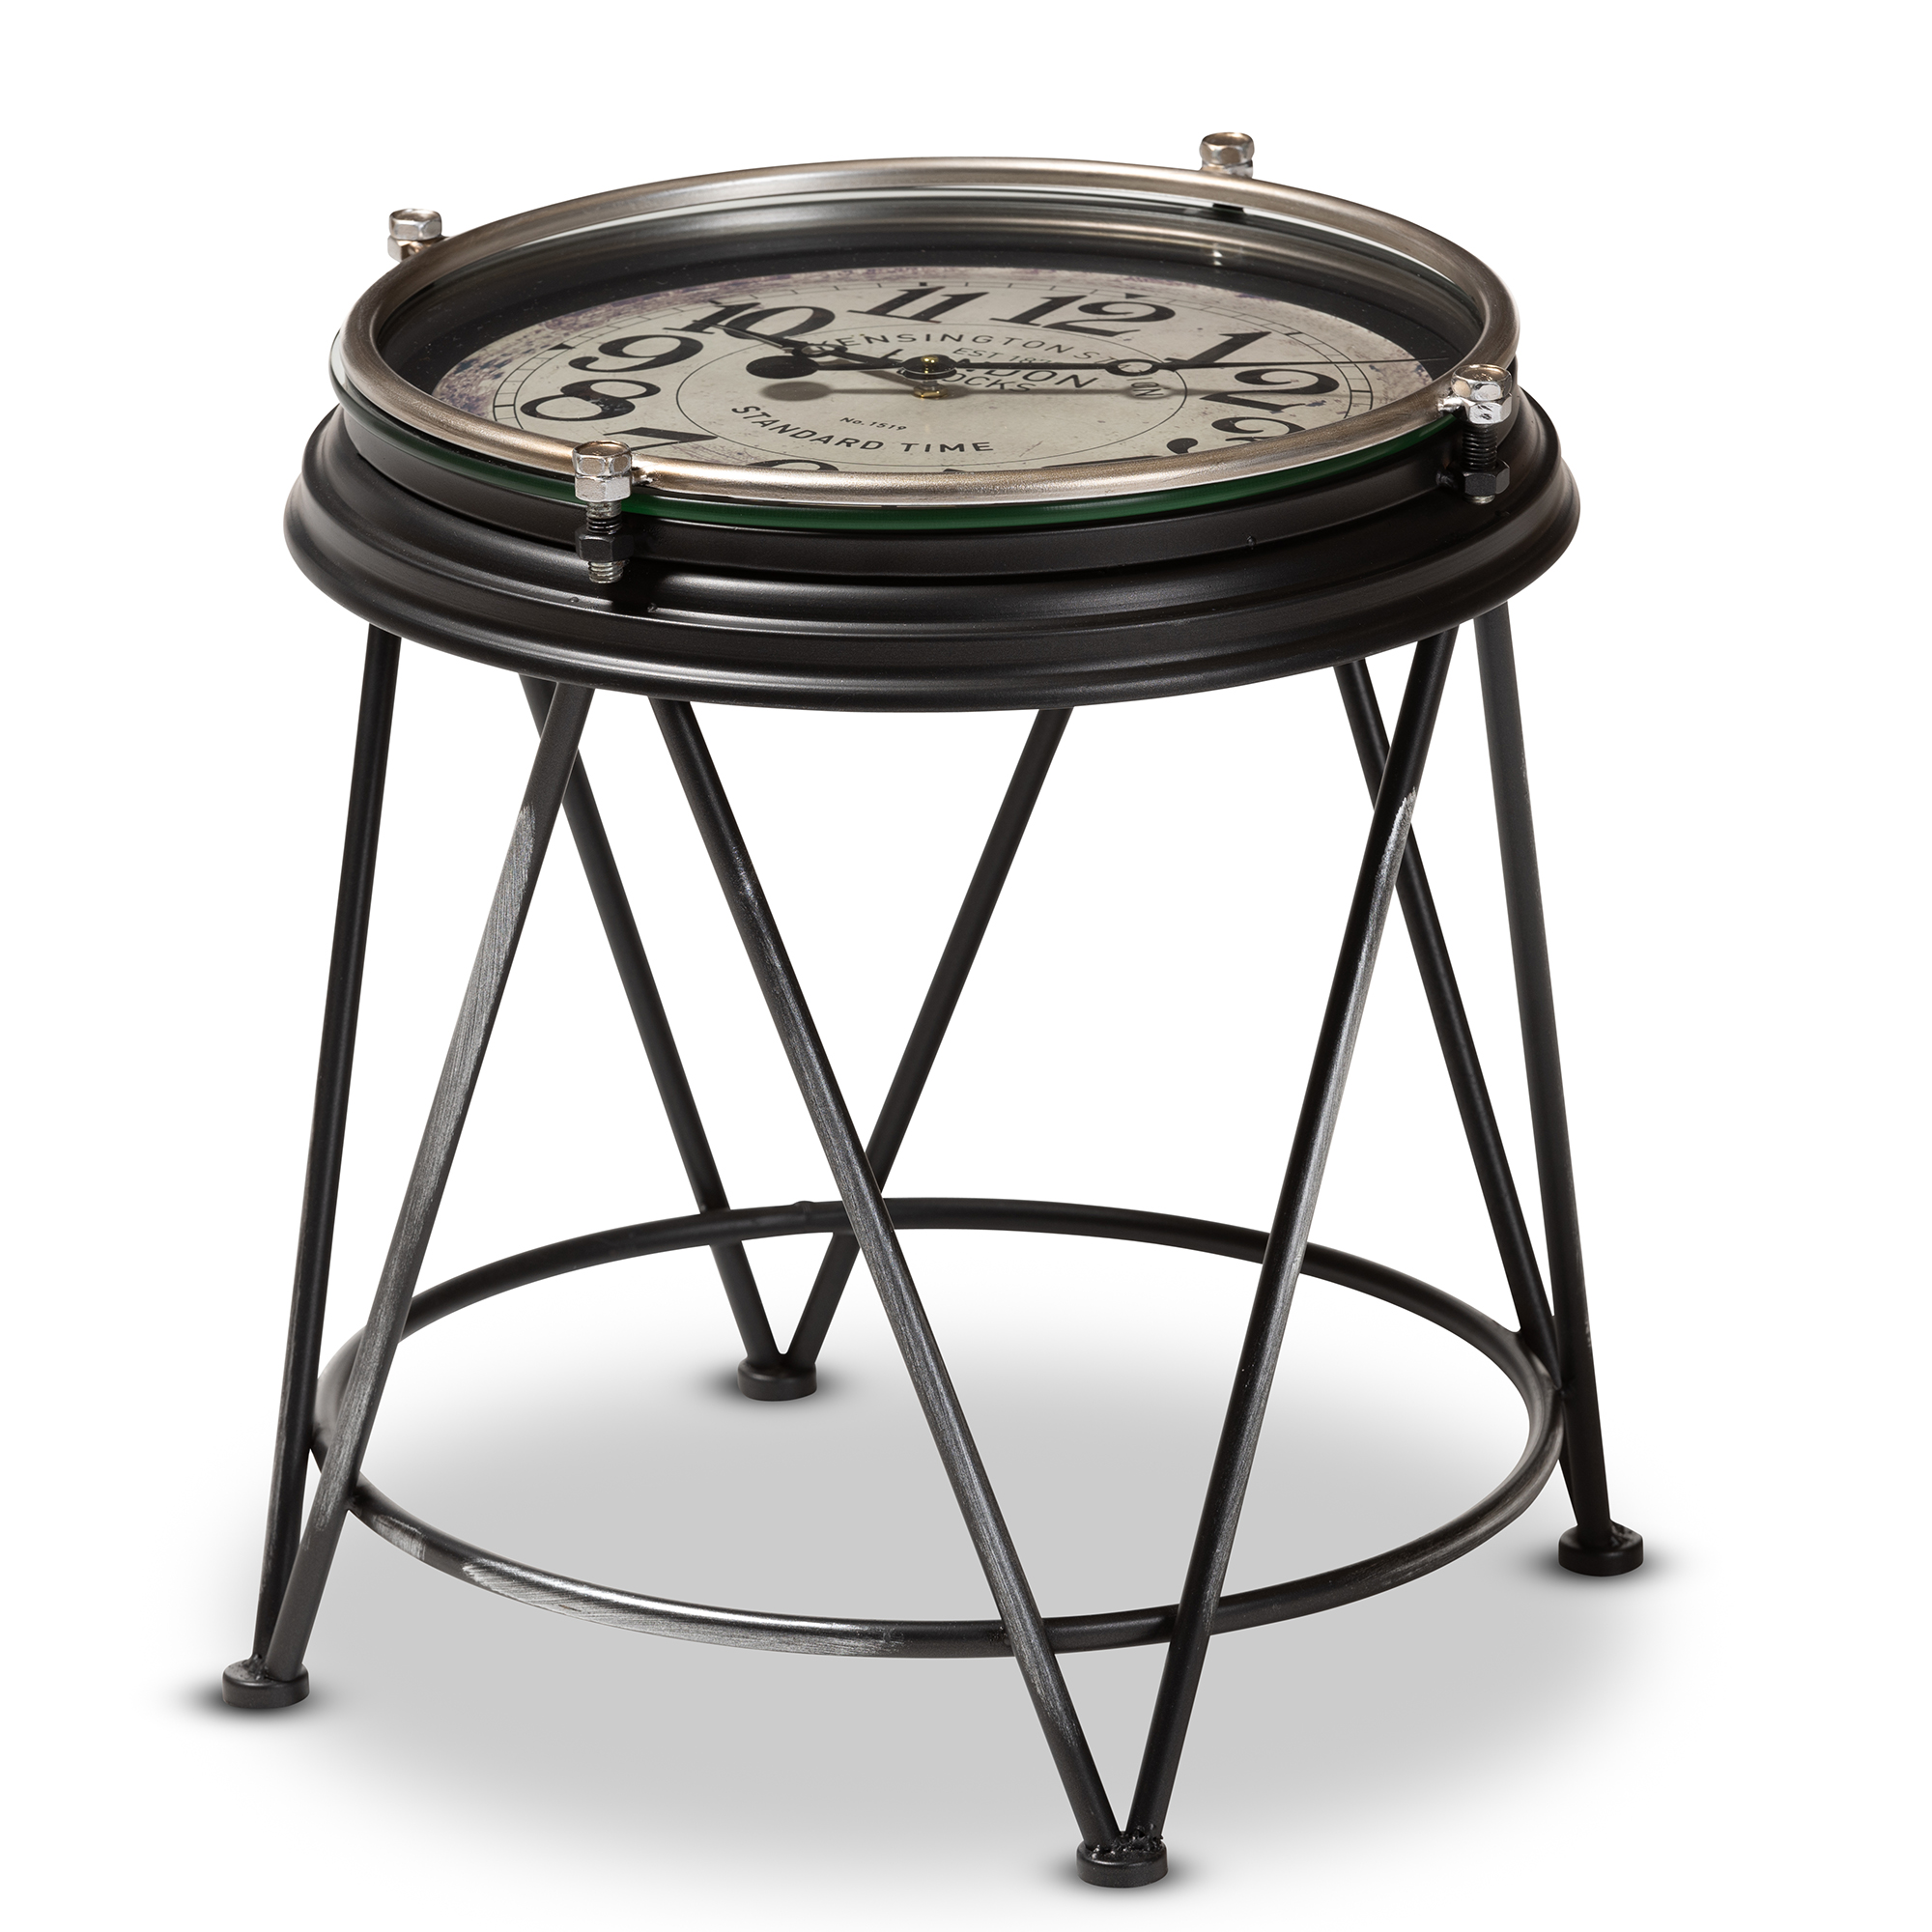 baxton studio giles vintage industrial matte black finished metal accent table with inlaid clock nautical pendant lights cement outdoor dining lucite room round pedestal wood frog